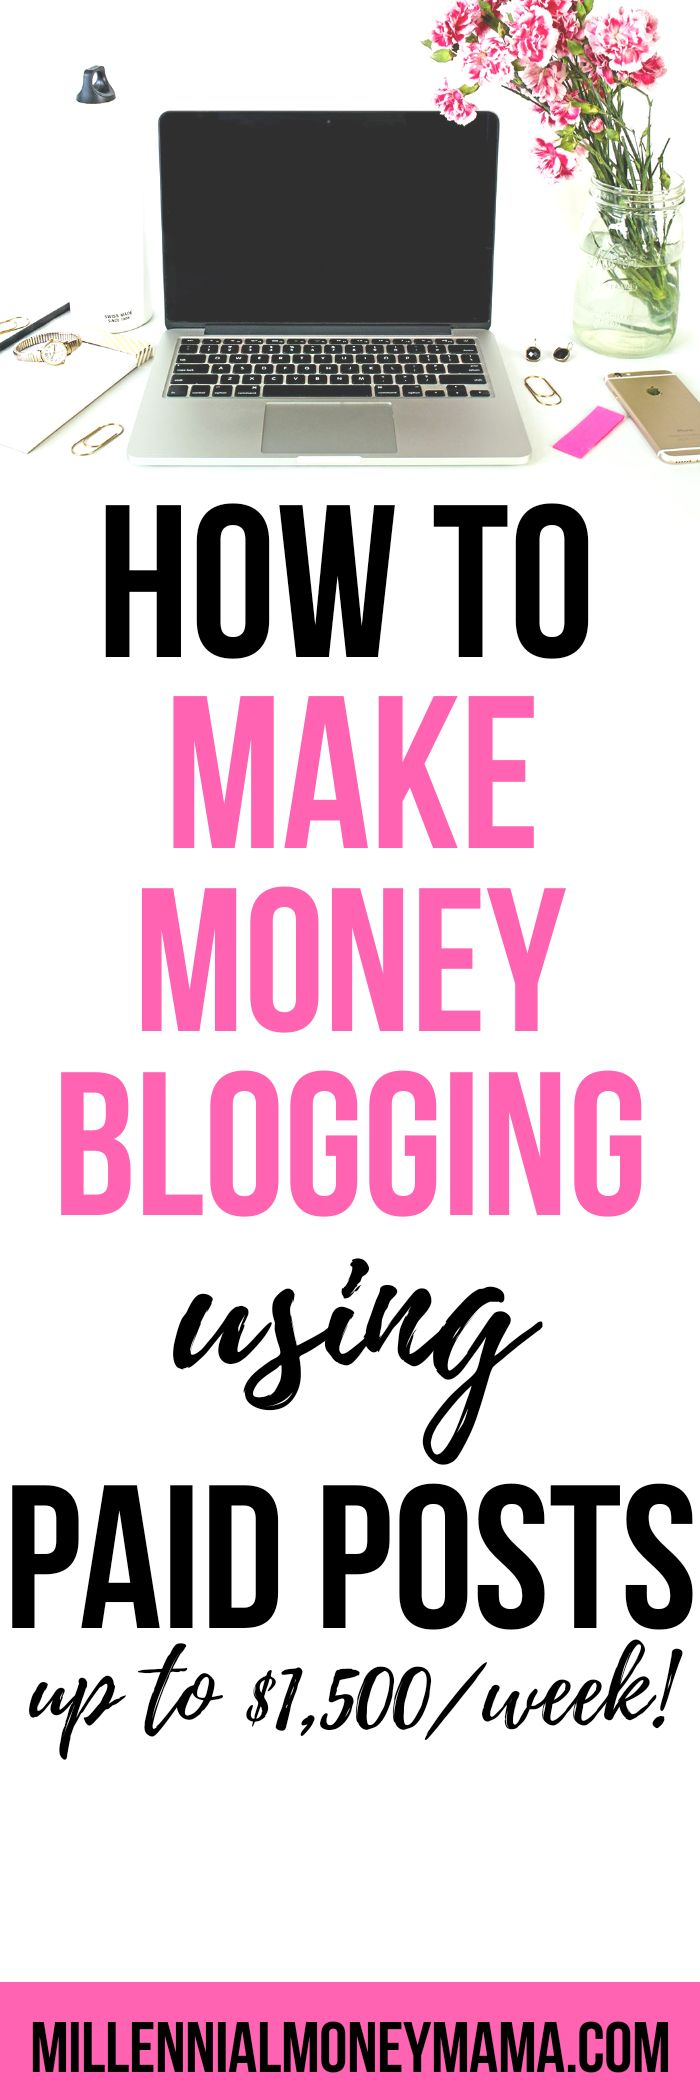 Earn thousands weekly from companies who pay you to post on your blog. Check ot out #bloggingformoney #blogging #makemoneyblogging #blogsponsorship #bloggingideas